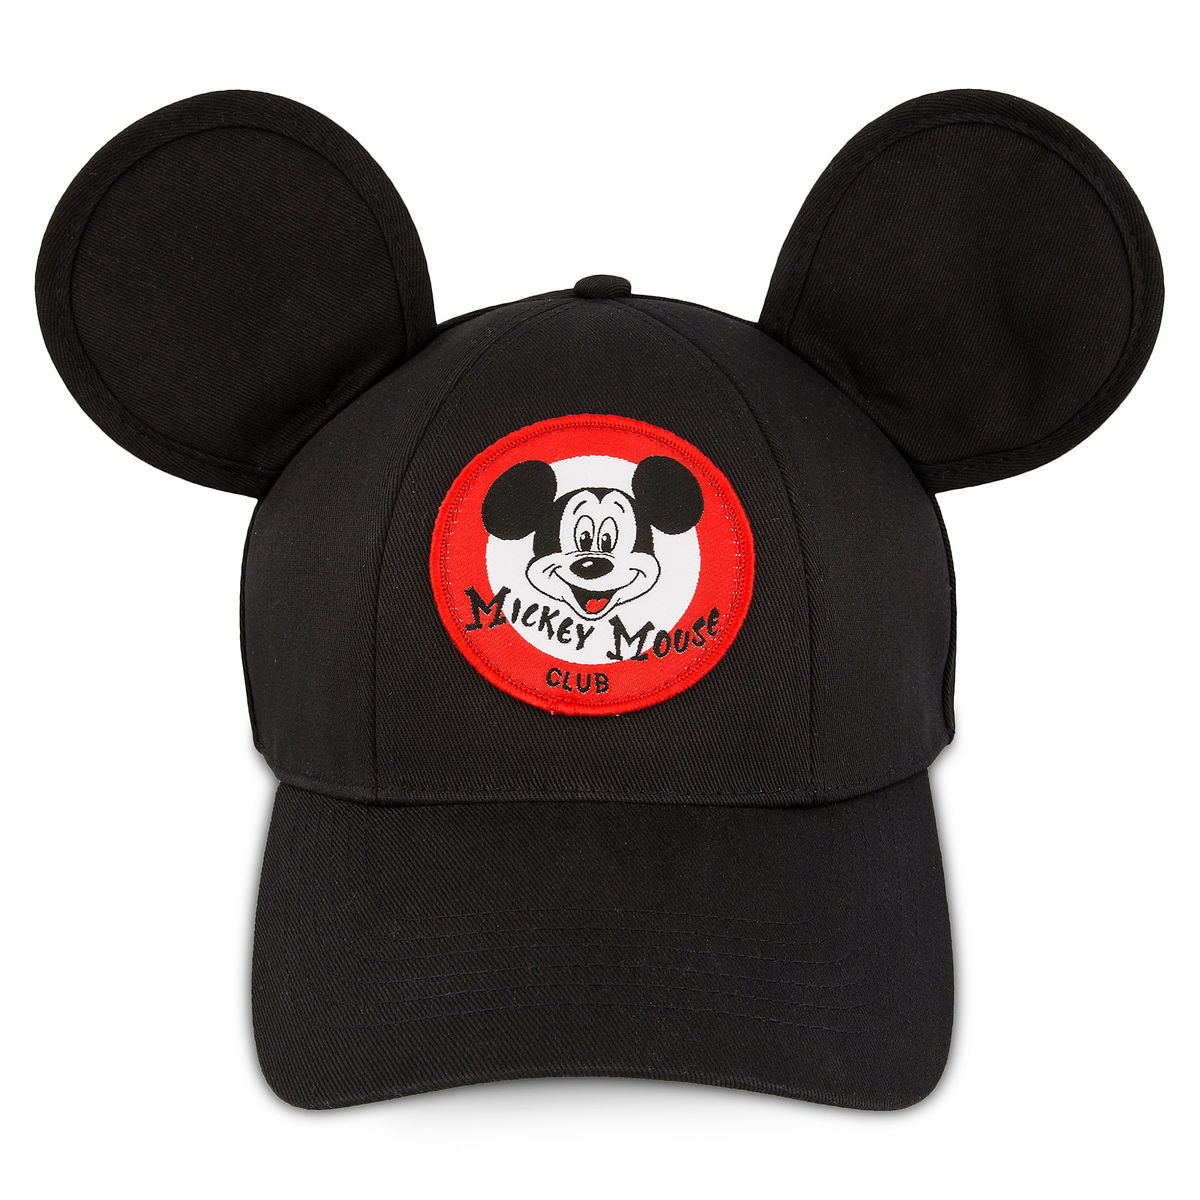 825cb45c808 Product Image of Mouseketeer Ear Baseball Cap for Adults - The Mickey Mouse  Club   1